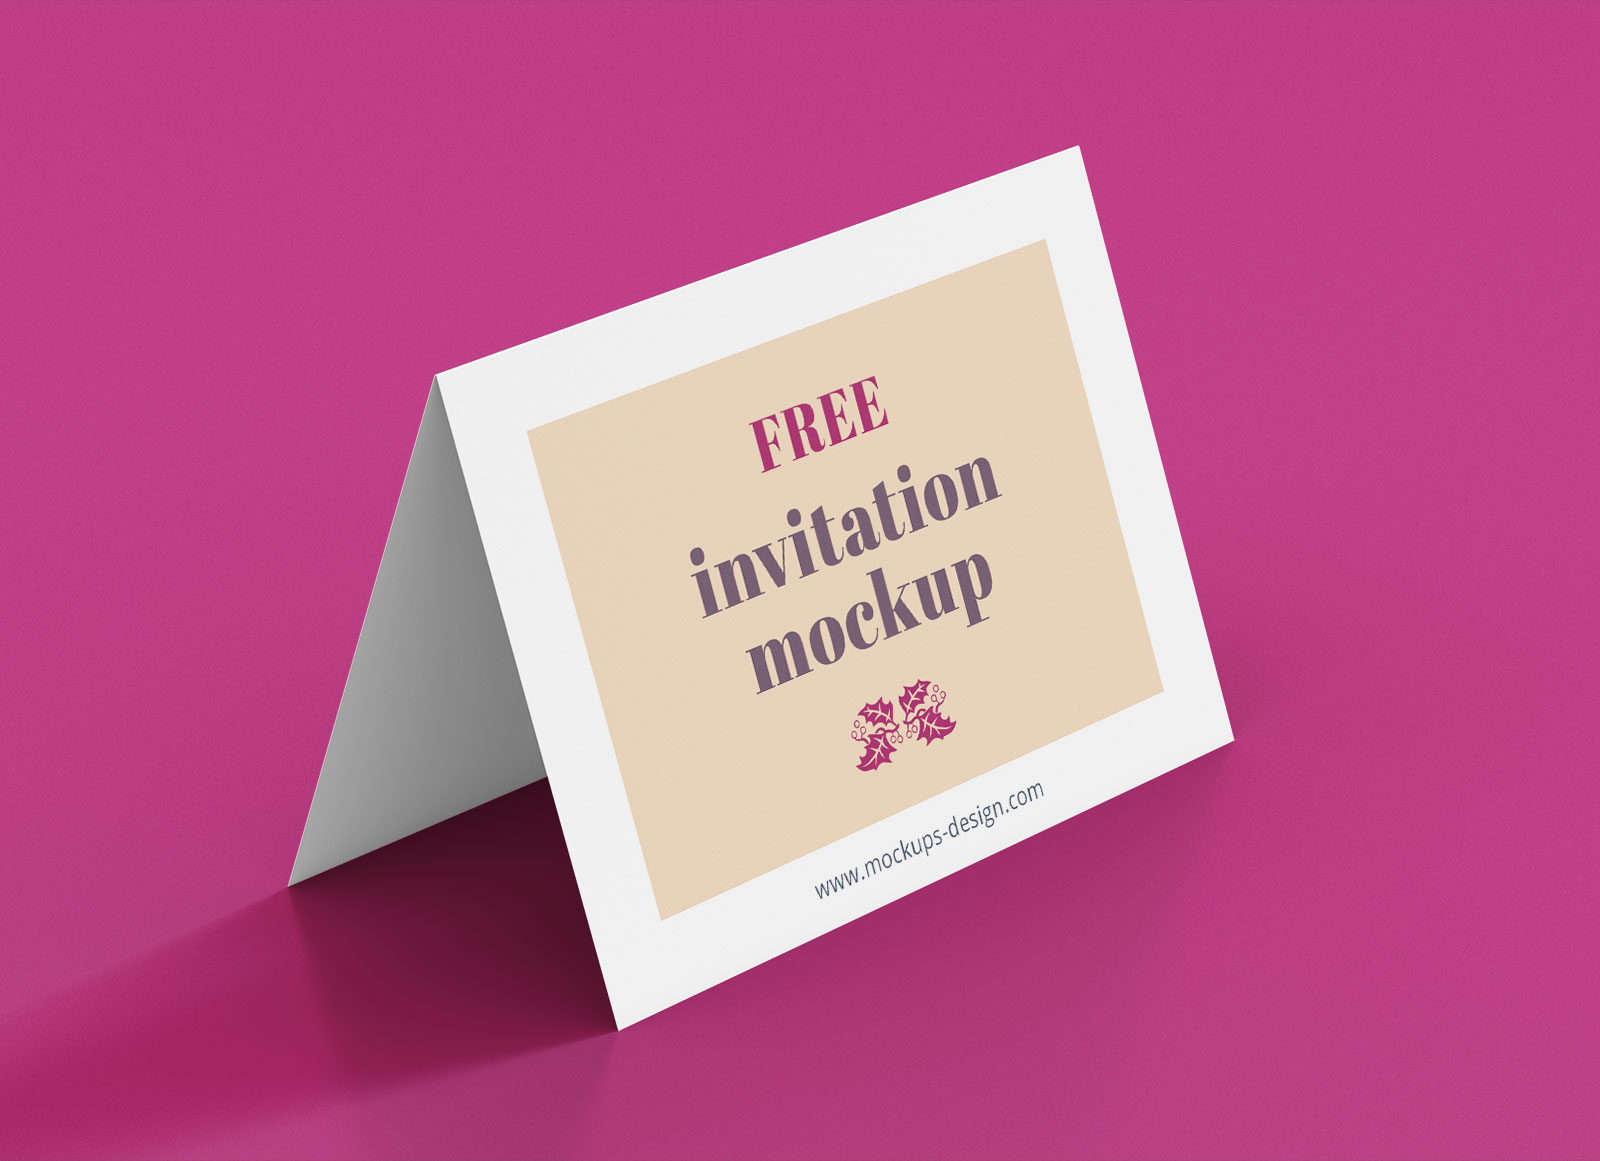 Free-Greeting-Invitiation_Card-Mockup_PSD-Set-3